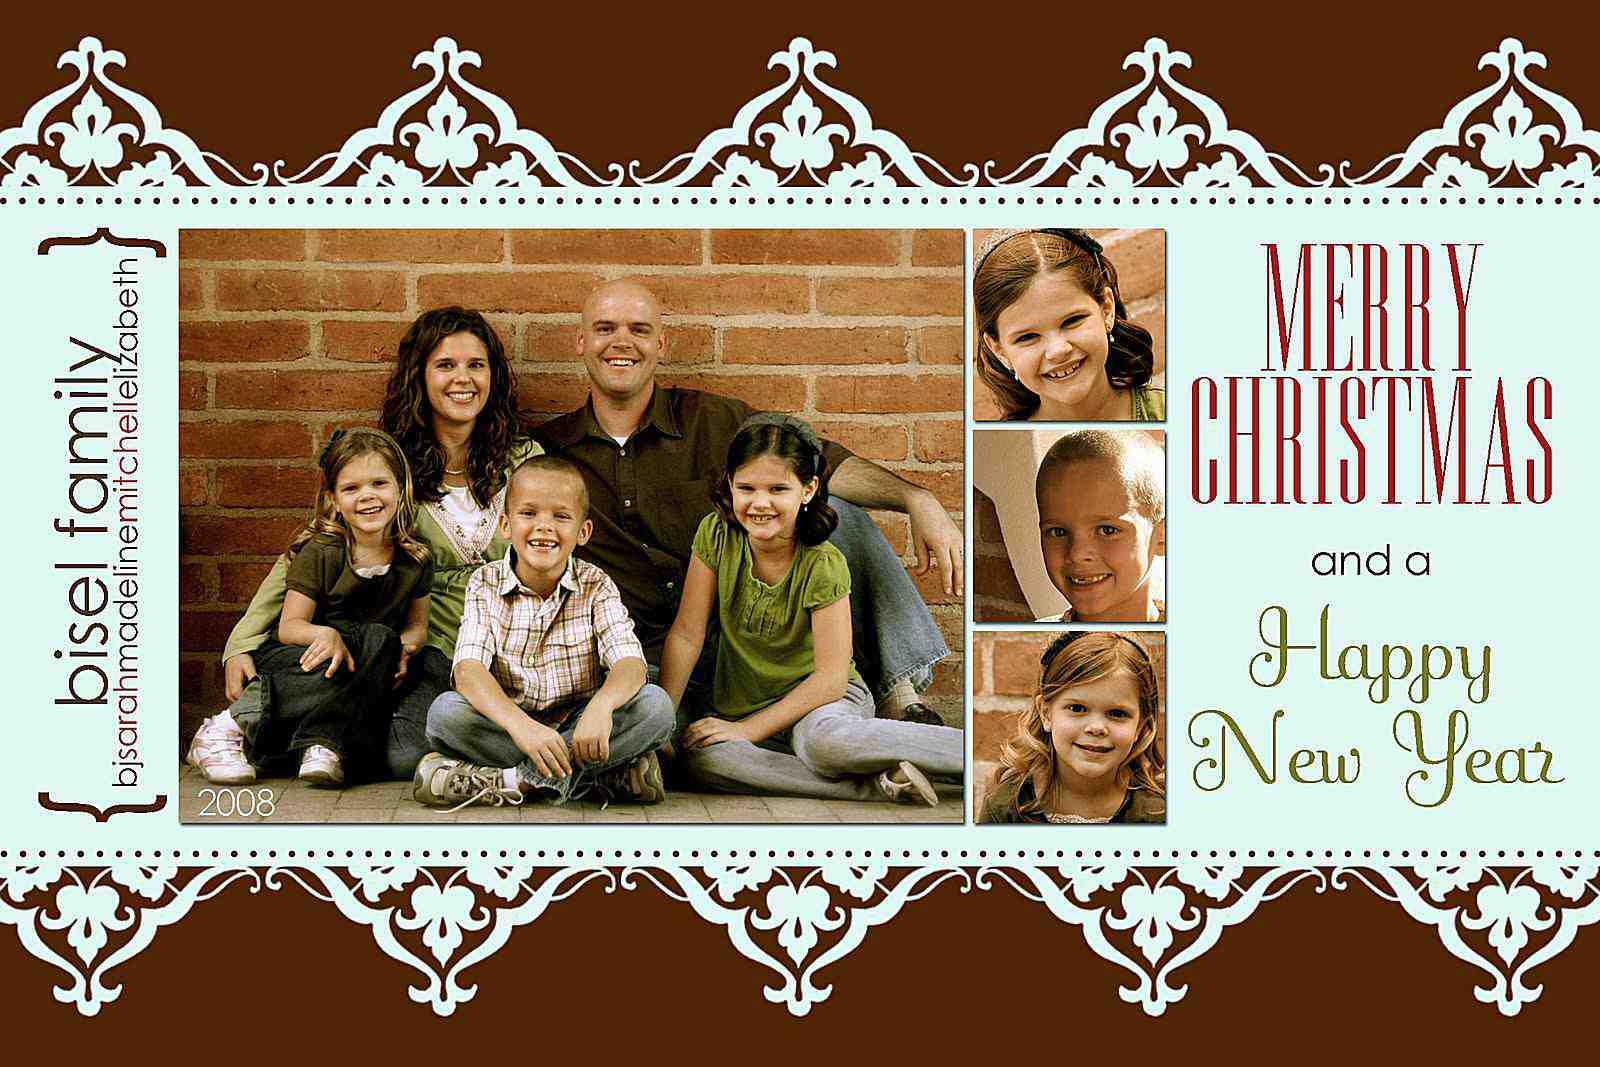 024 Milk And Honey Designs Free Christmas Card Templates Intended For Holiday Card Templates For Photographers